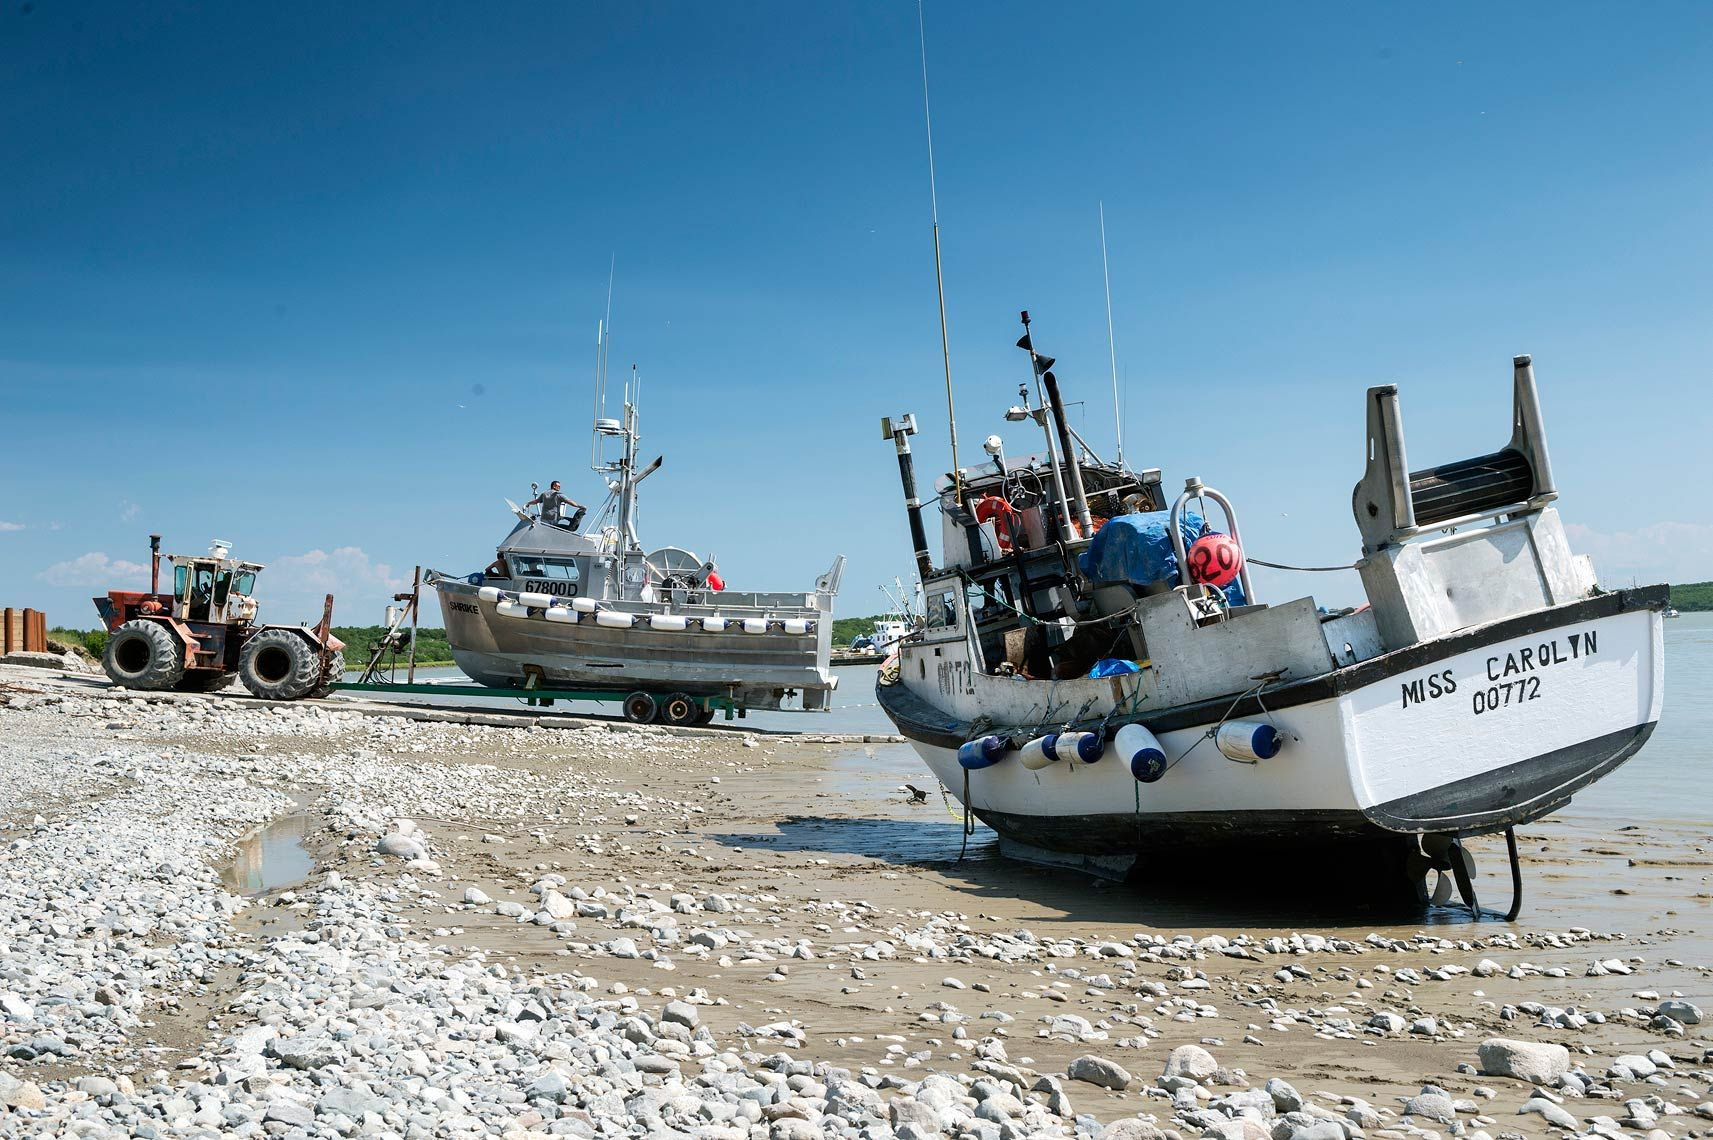 The fishing vessel Shrike gets launched into the Naknek River at the Lummi Fisheries launch ramp, while the F/V Miss Carolyn waits for the tide to come back in. The combination of shallow waters and very large tides makes for interesting logistics in Bristol Bay.